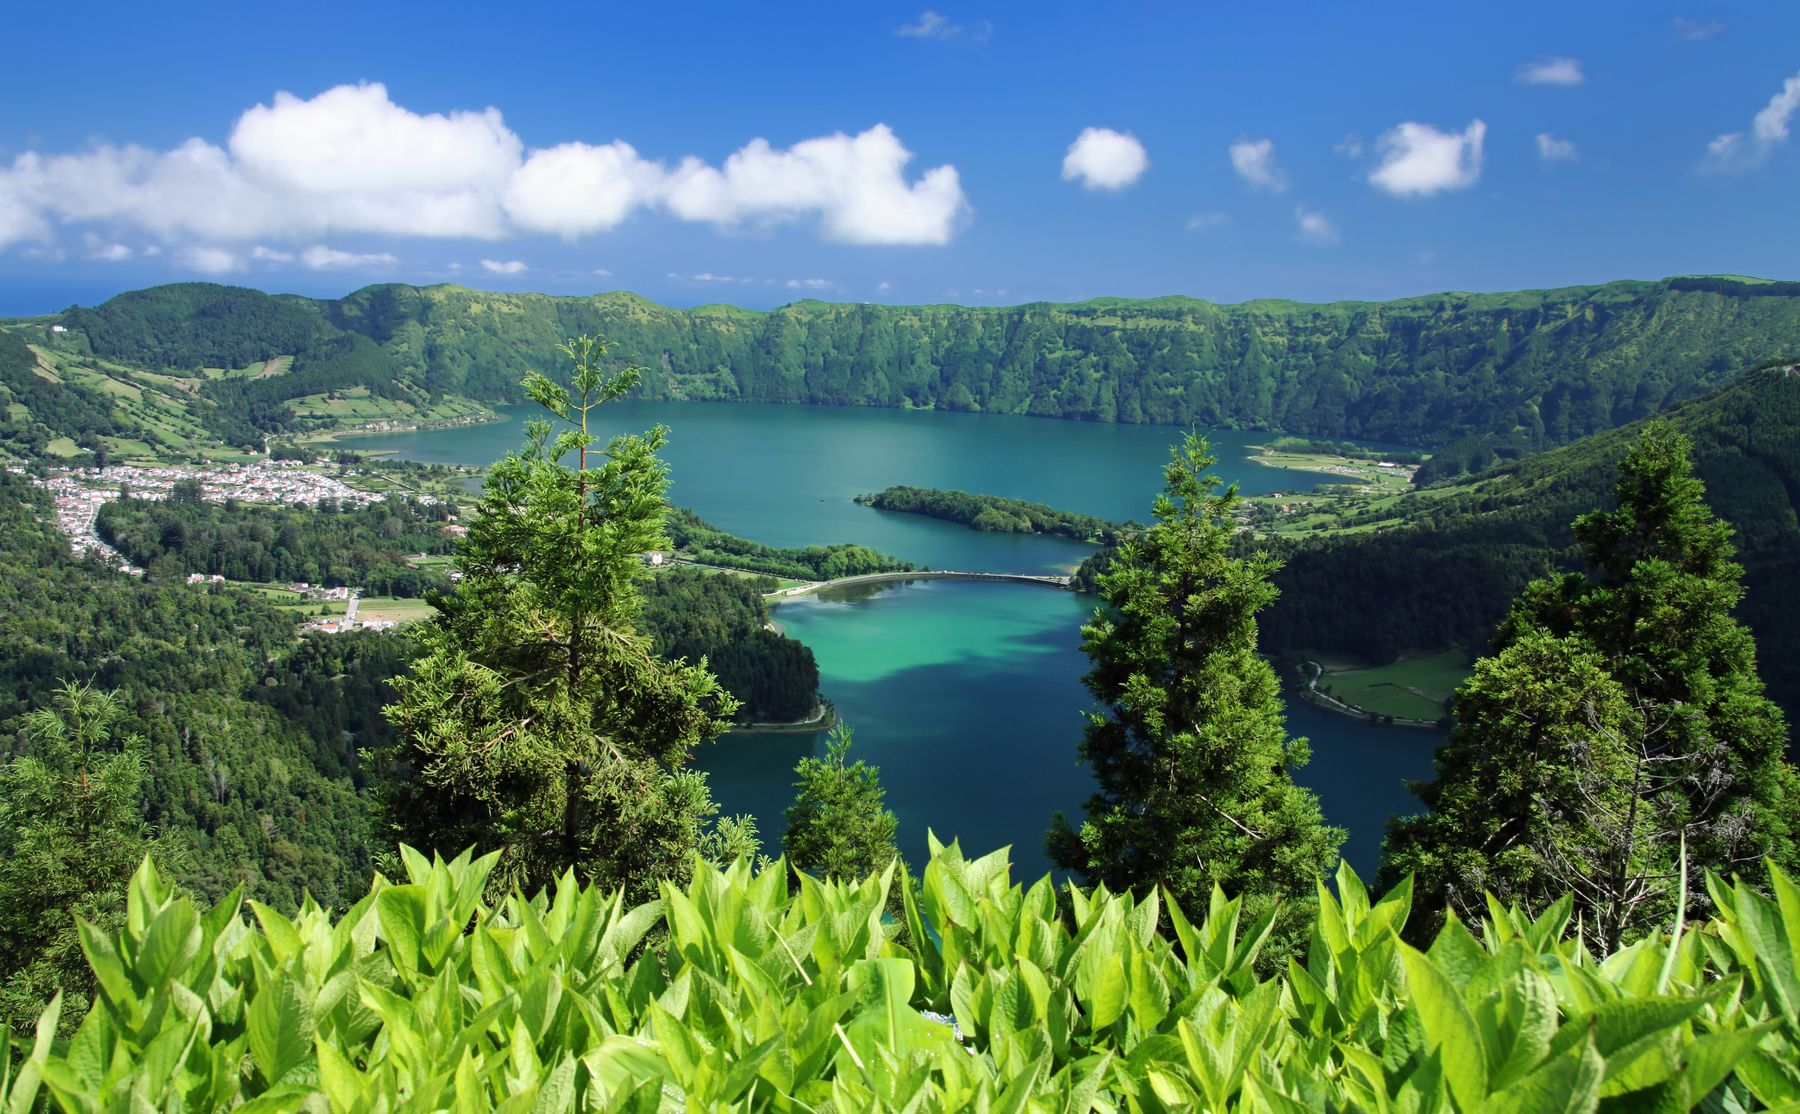 View of water and trees in the Azores